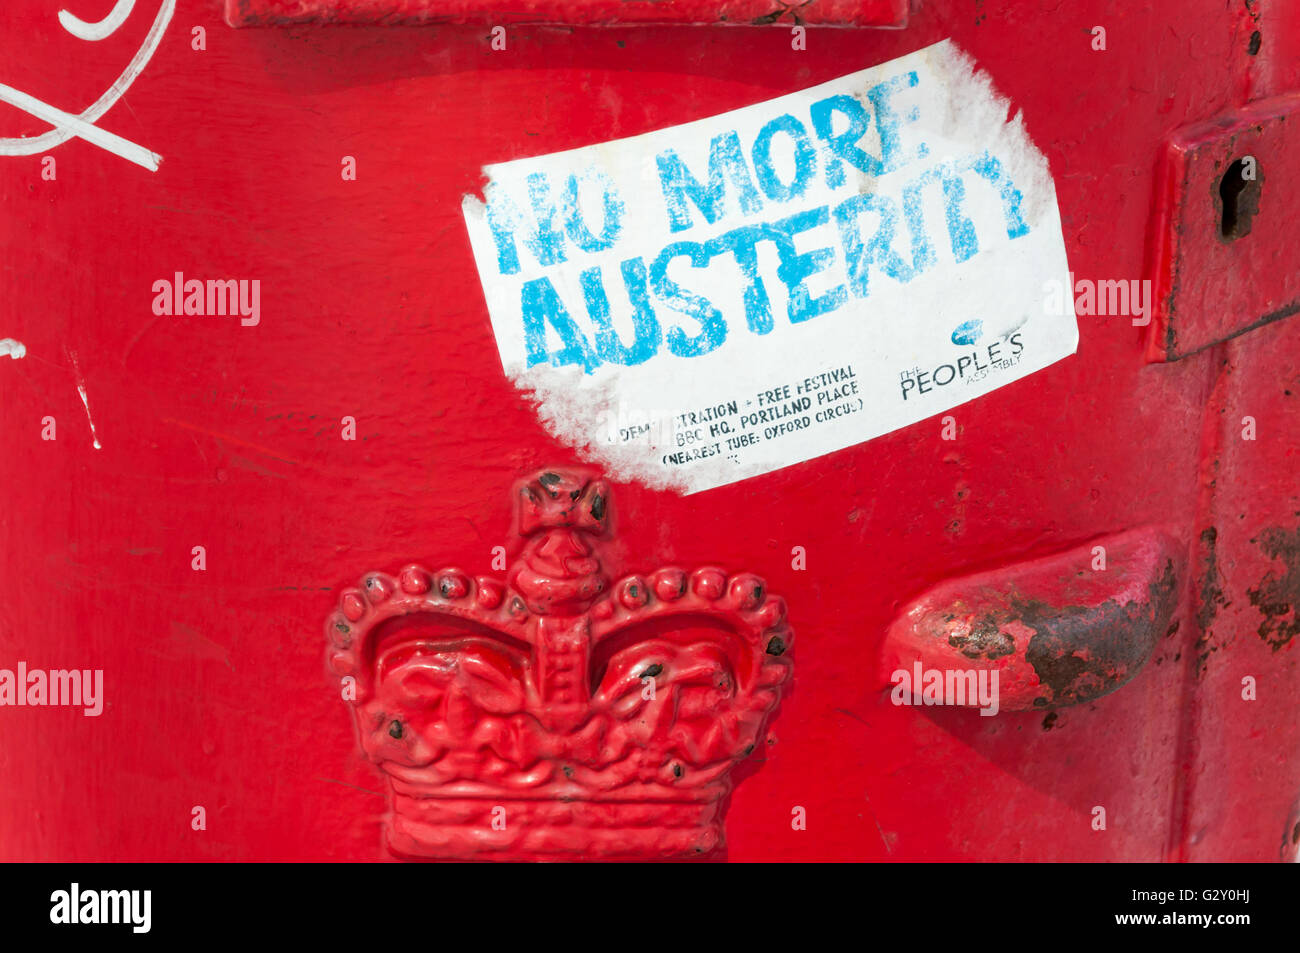 No More Austerity sticker on a red pillar box. - Stock Image